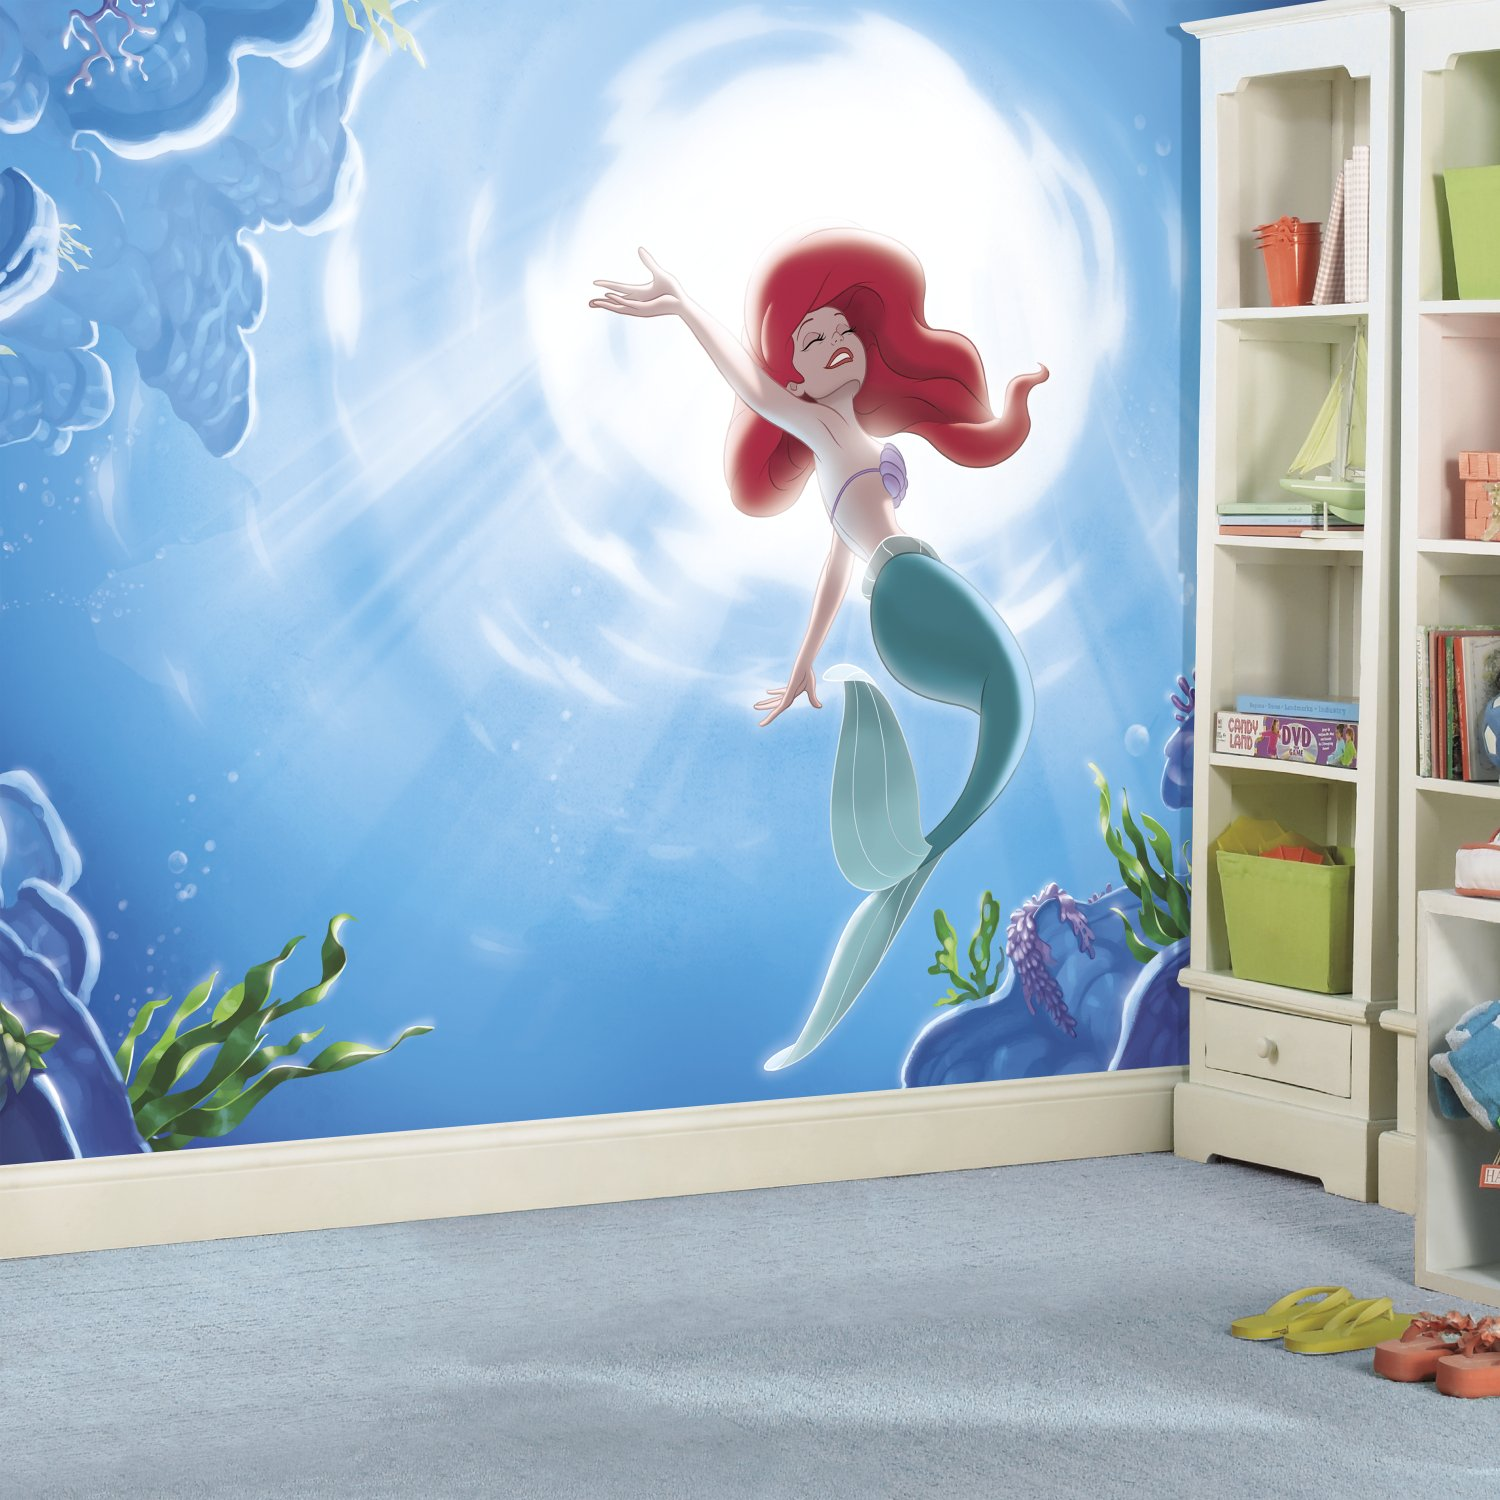 RoomMates Disney Princess The Little Mermaid 'Part Of Your World' Prepasted, Removable Wall Mural - 6' X 10.5' by RoomMates (Image #1)